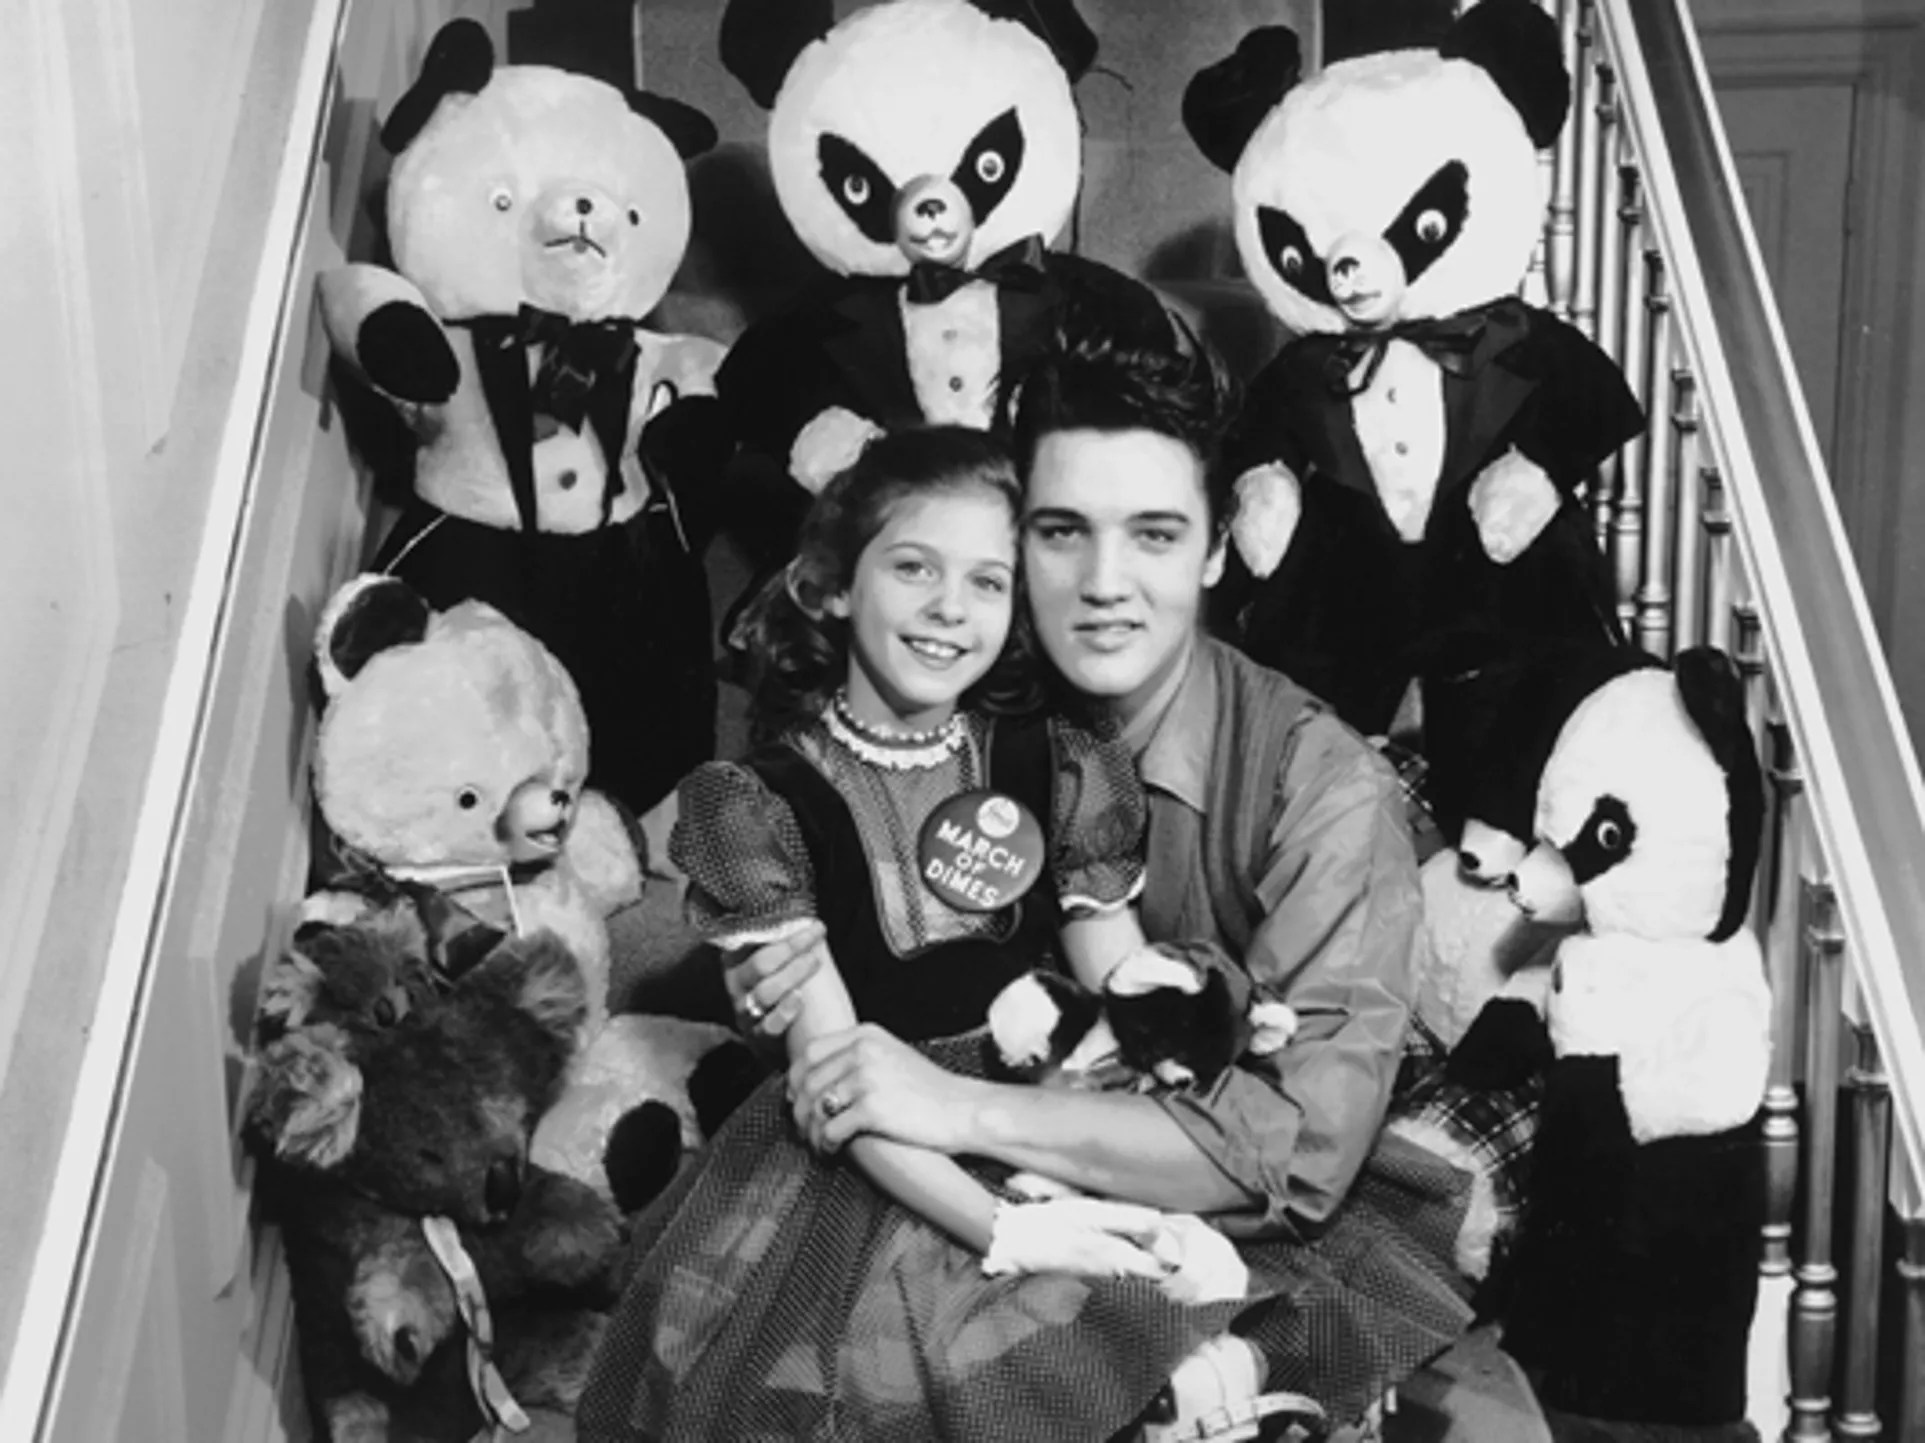 Eight-year-old Mary Kosloski had a date with Elvis Presley Jan. 8, 1958, and he kept her waiting for more than two hours. The Collierville girl, who was the national March of Dimes poster child in 1955, seemed to forgive all when Elvis appeared and told her: 'If you were 10 years older, honey, I wouldn't let you go.' The pair were photographed with teddy bears and pandas Elvis was sending to the National Foundation for Infantile Paralysis for auction during an upcoming fund drive.